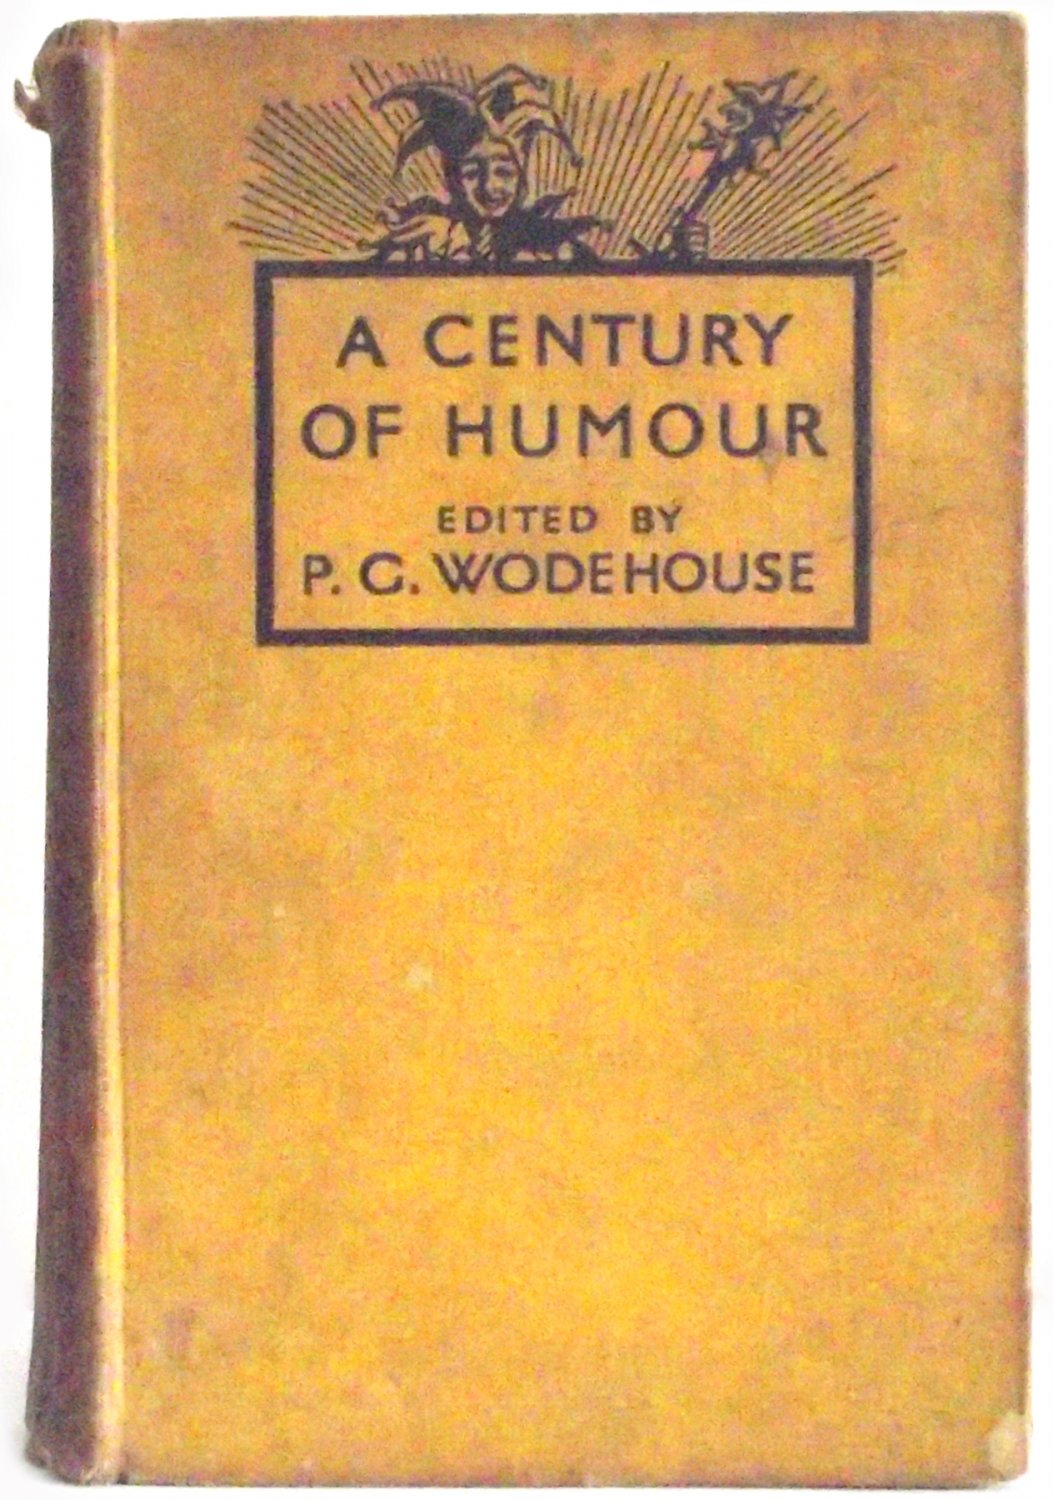 A Century of Humour Edited by P.G. Wodehouse First Edition 1934